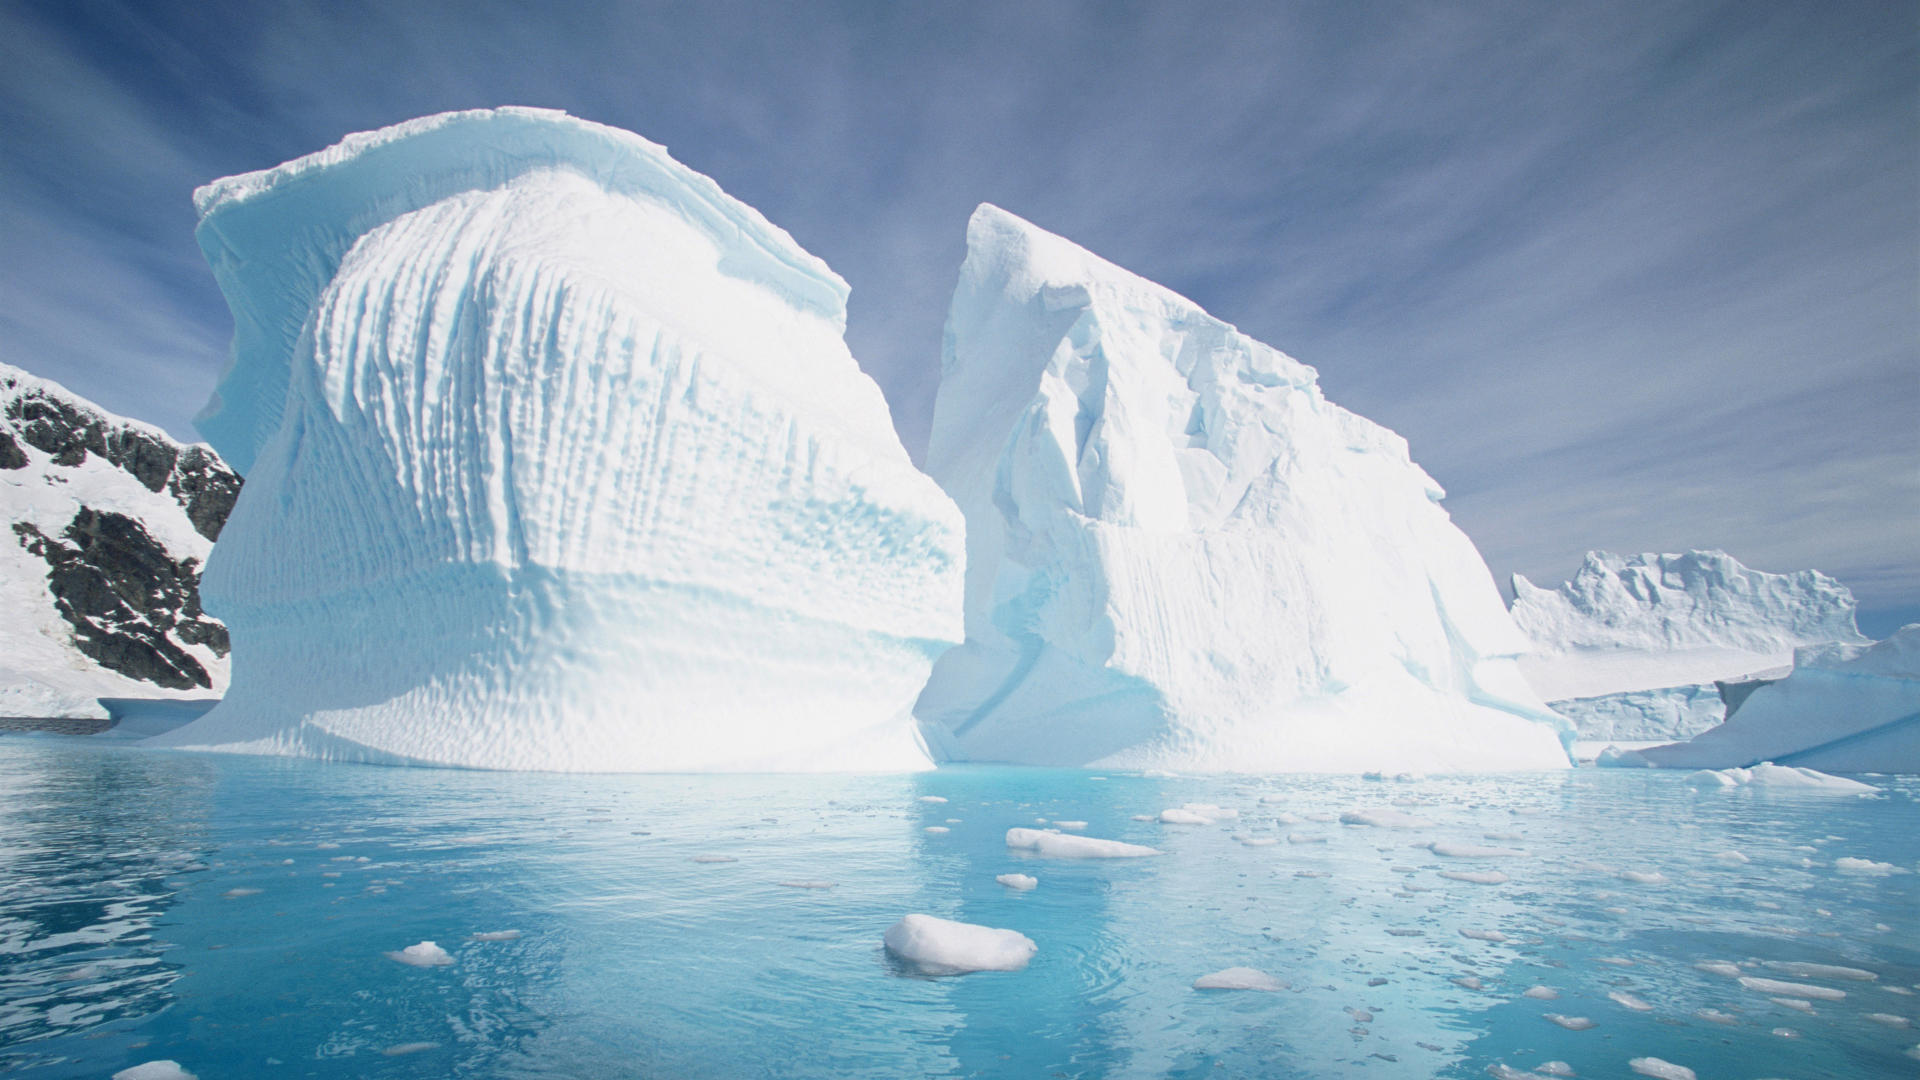 Animated Wallpapers Free Download For Xp Antarctica Wallpapers High Quality Download Free